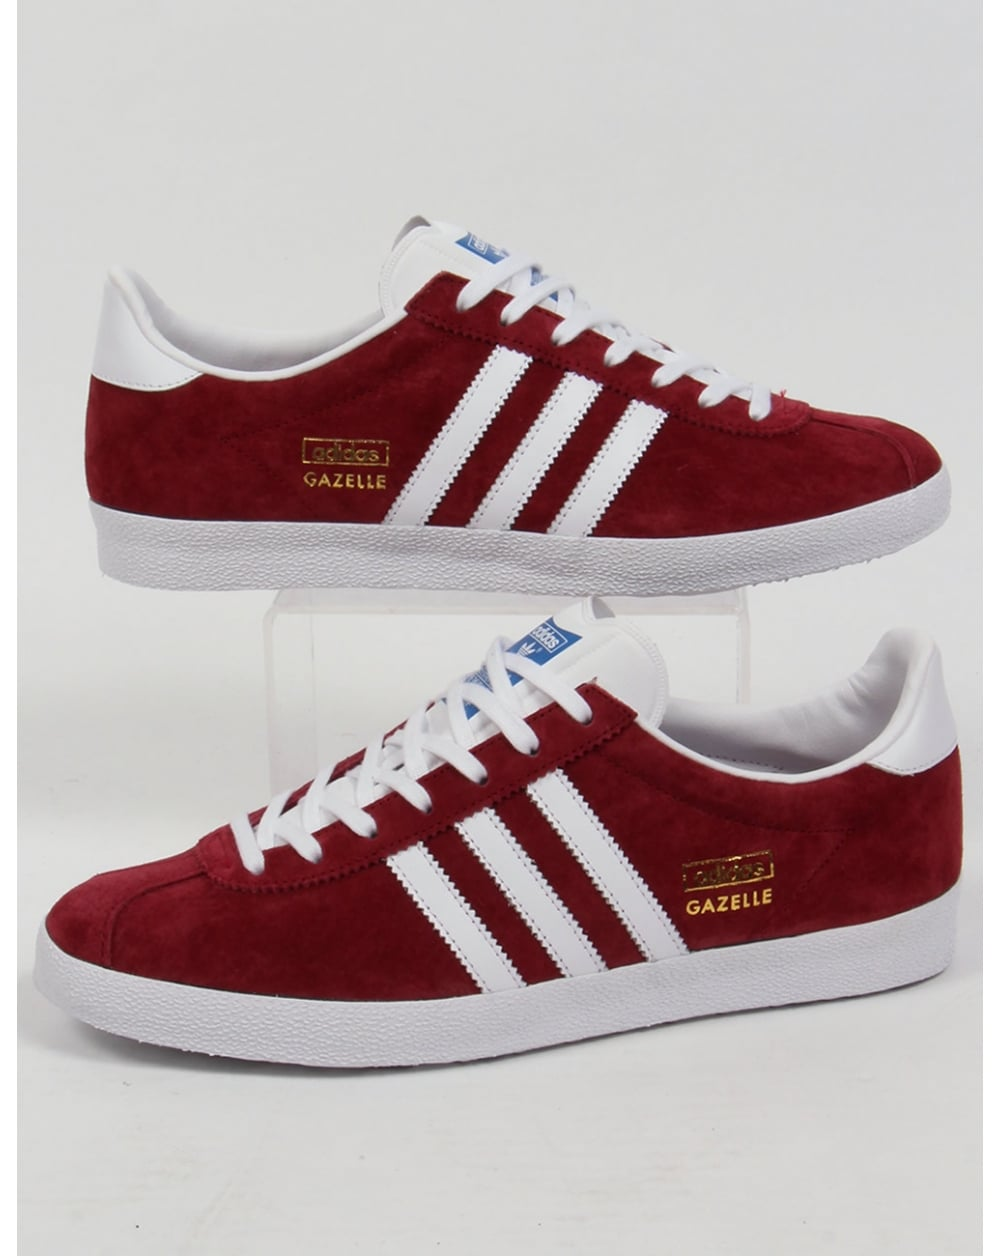 Adidas Gazelle OG Trainers Burgundy/white